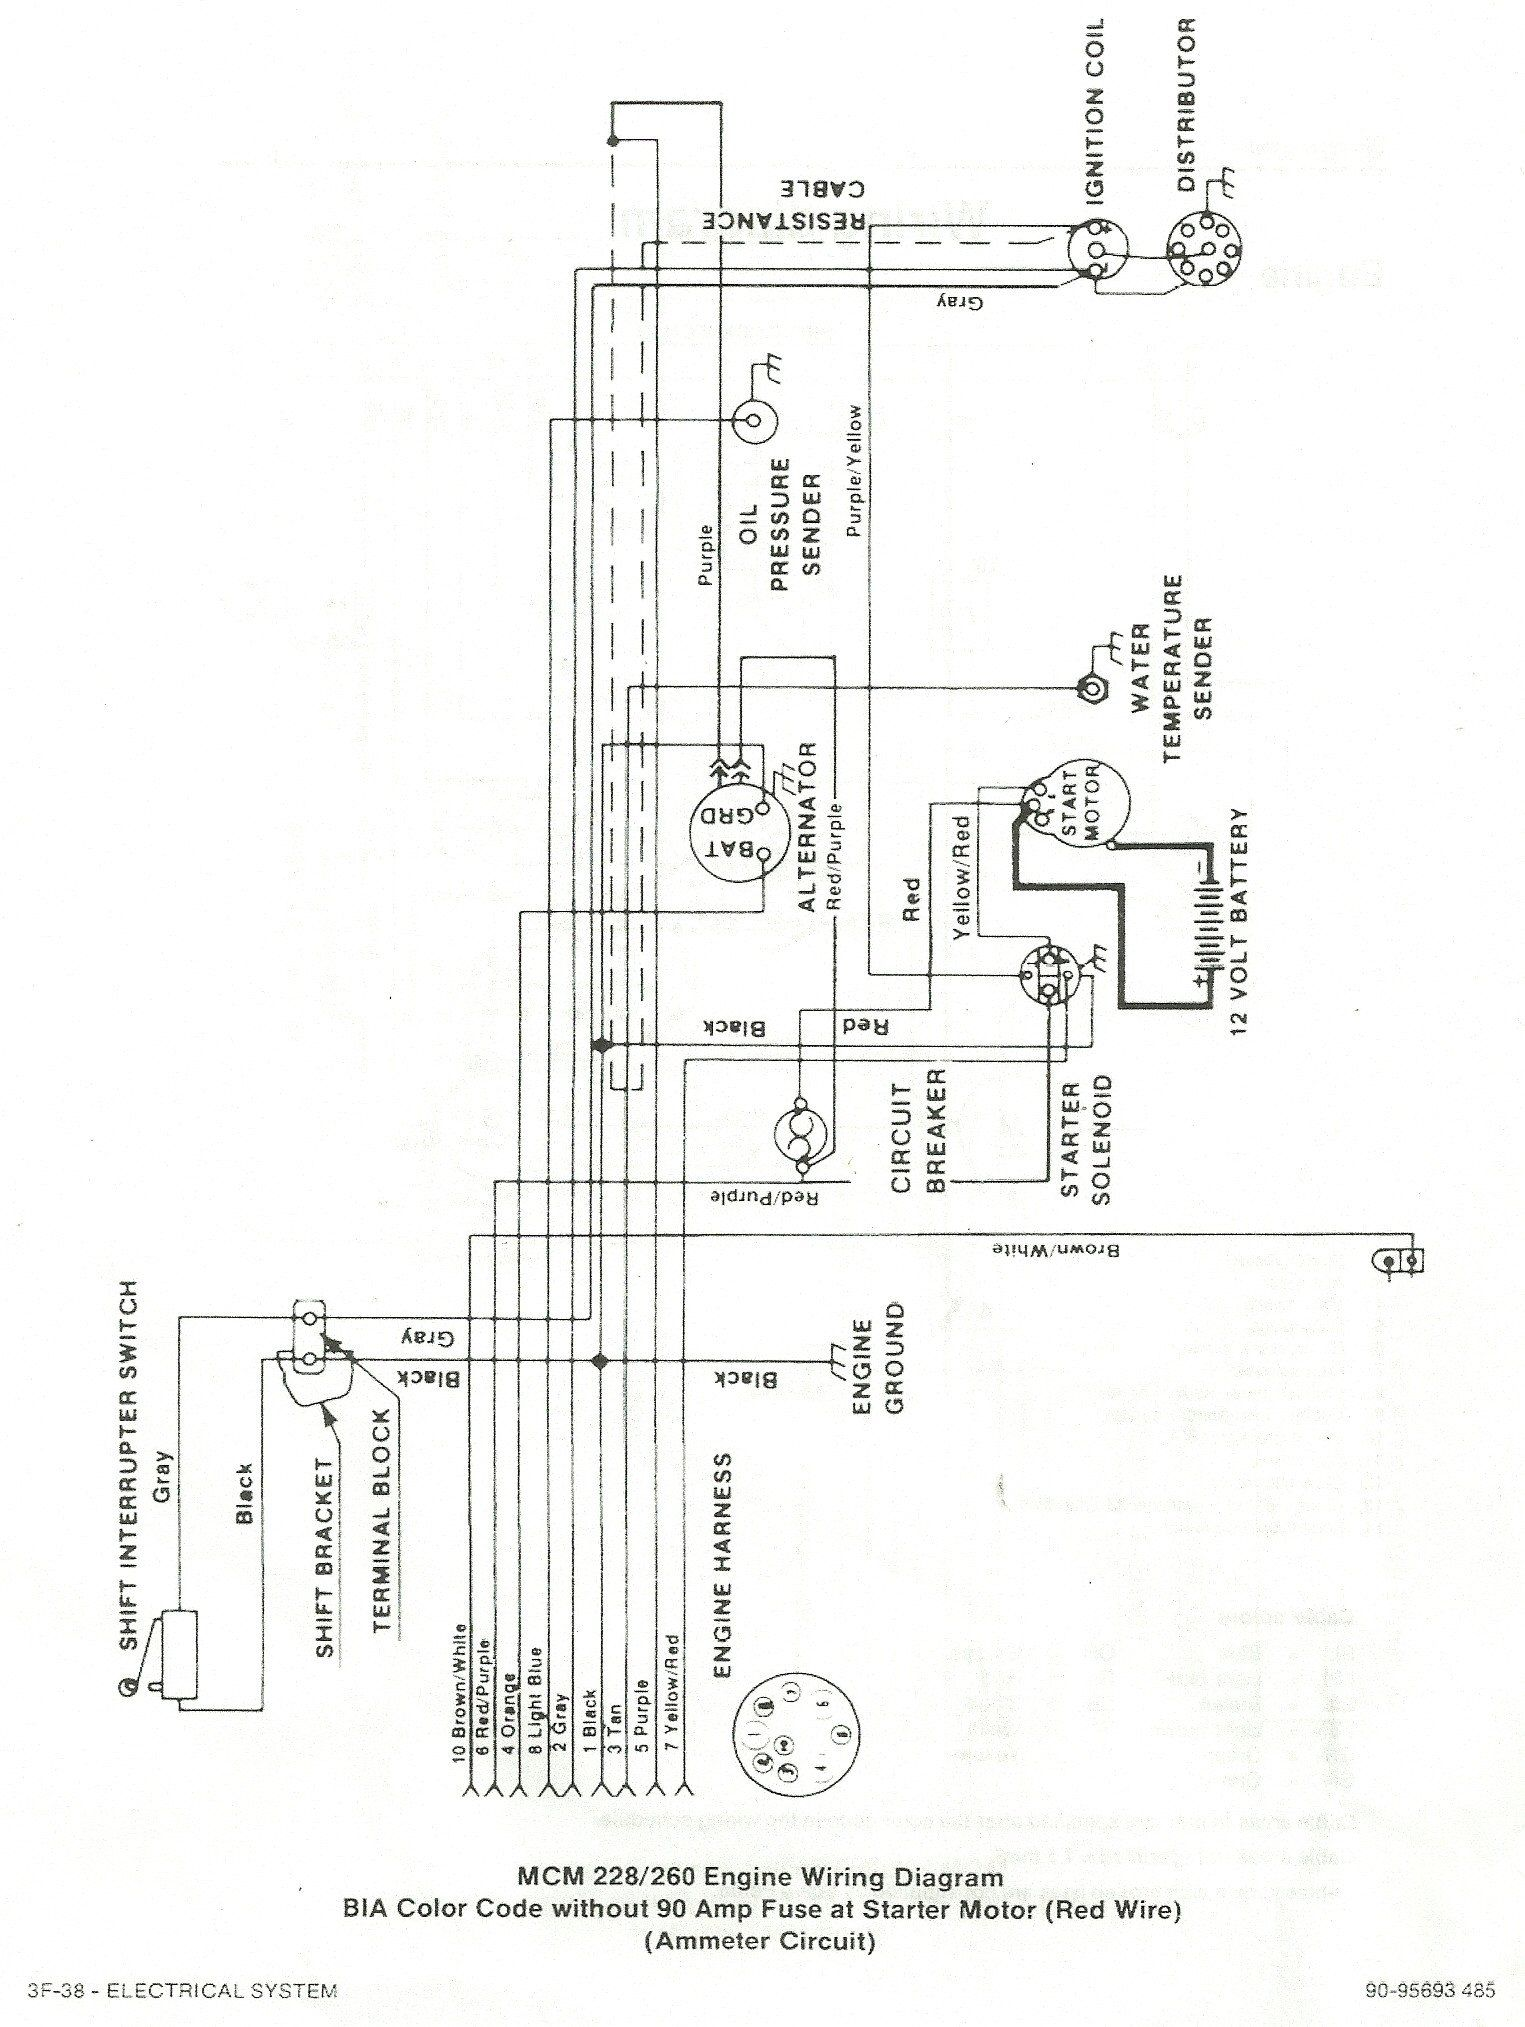 wiring diagram 3 0 merc wiring diagram megawiring diagram 3 0 merc wiring diagrams second wiring [ 1525 x 2027 Pixel ]